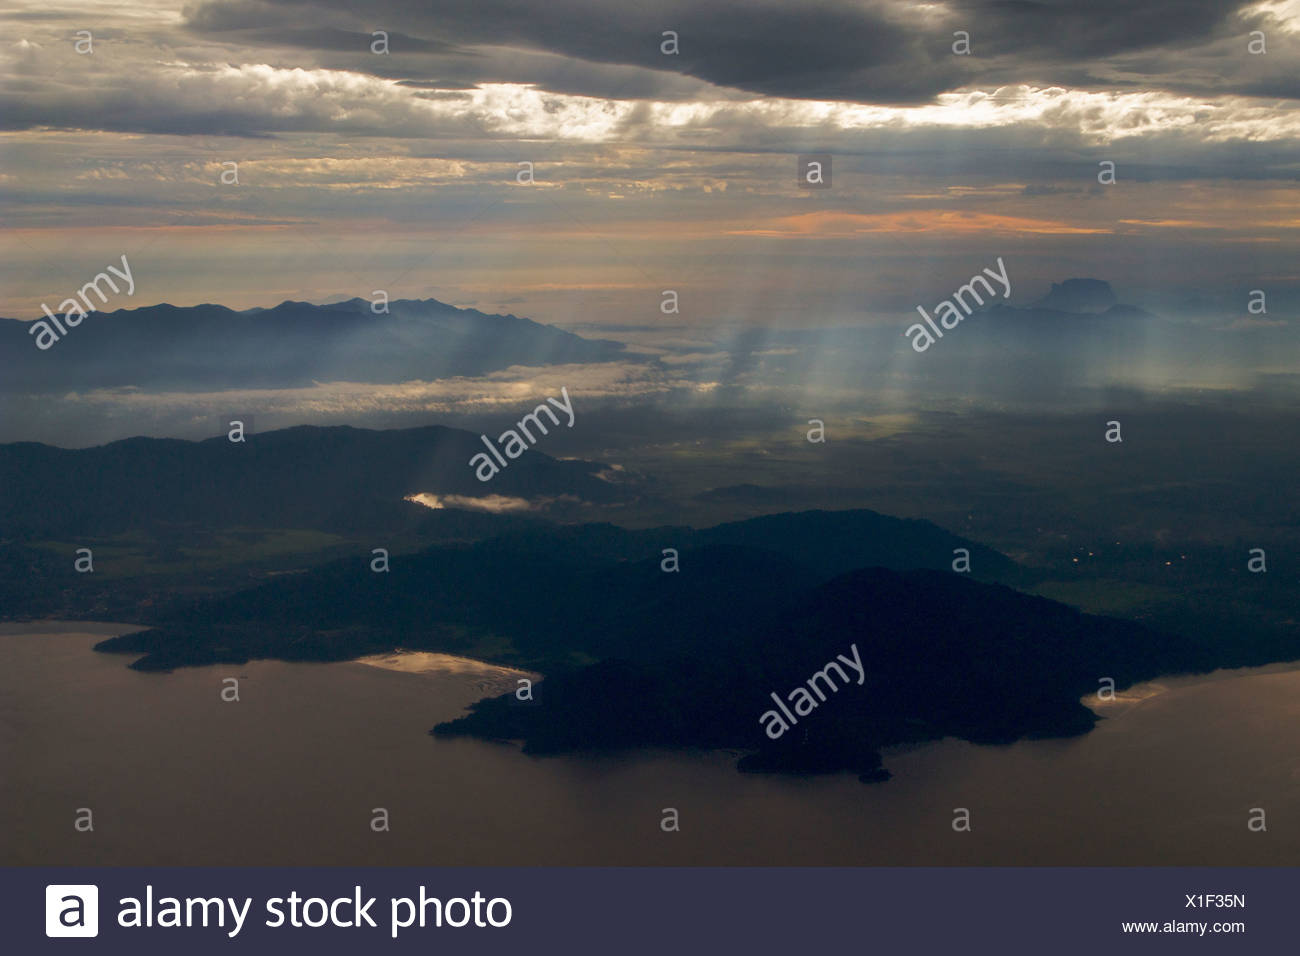 Sukadana and Gunung Palung from the air just off the coast. - Stock Image